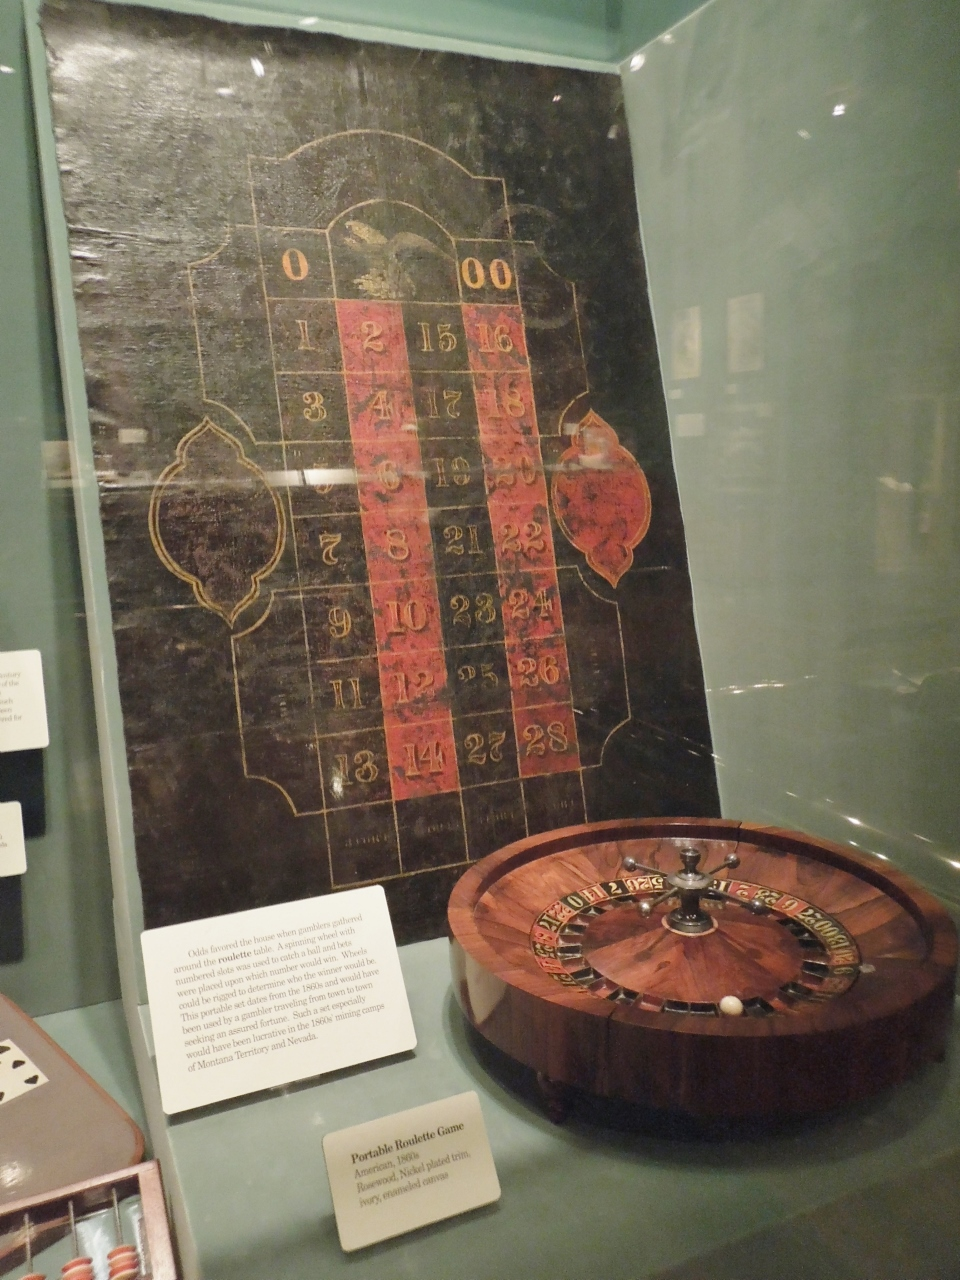 A portable roulette game from the 1860s.